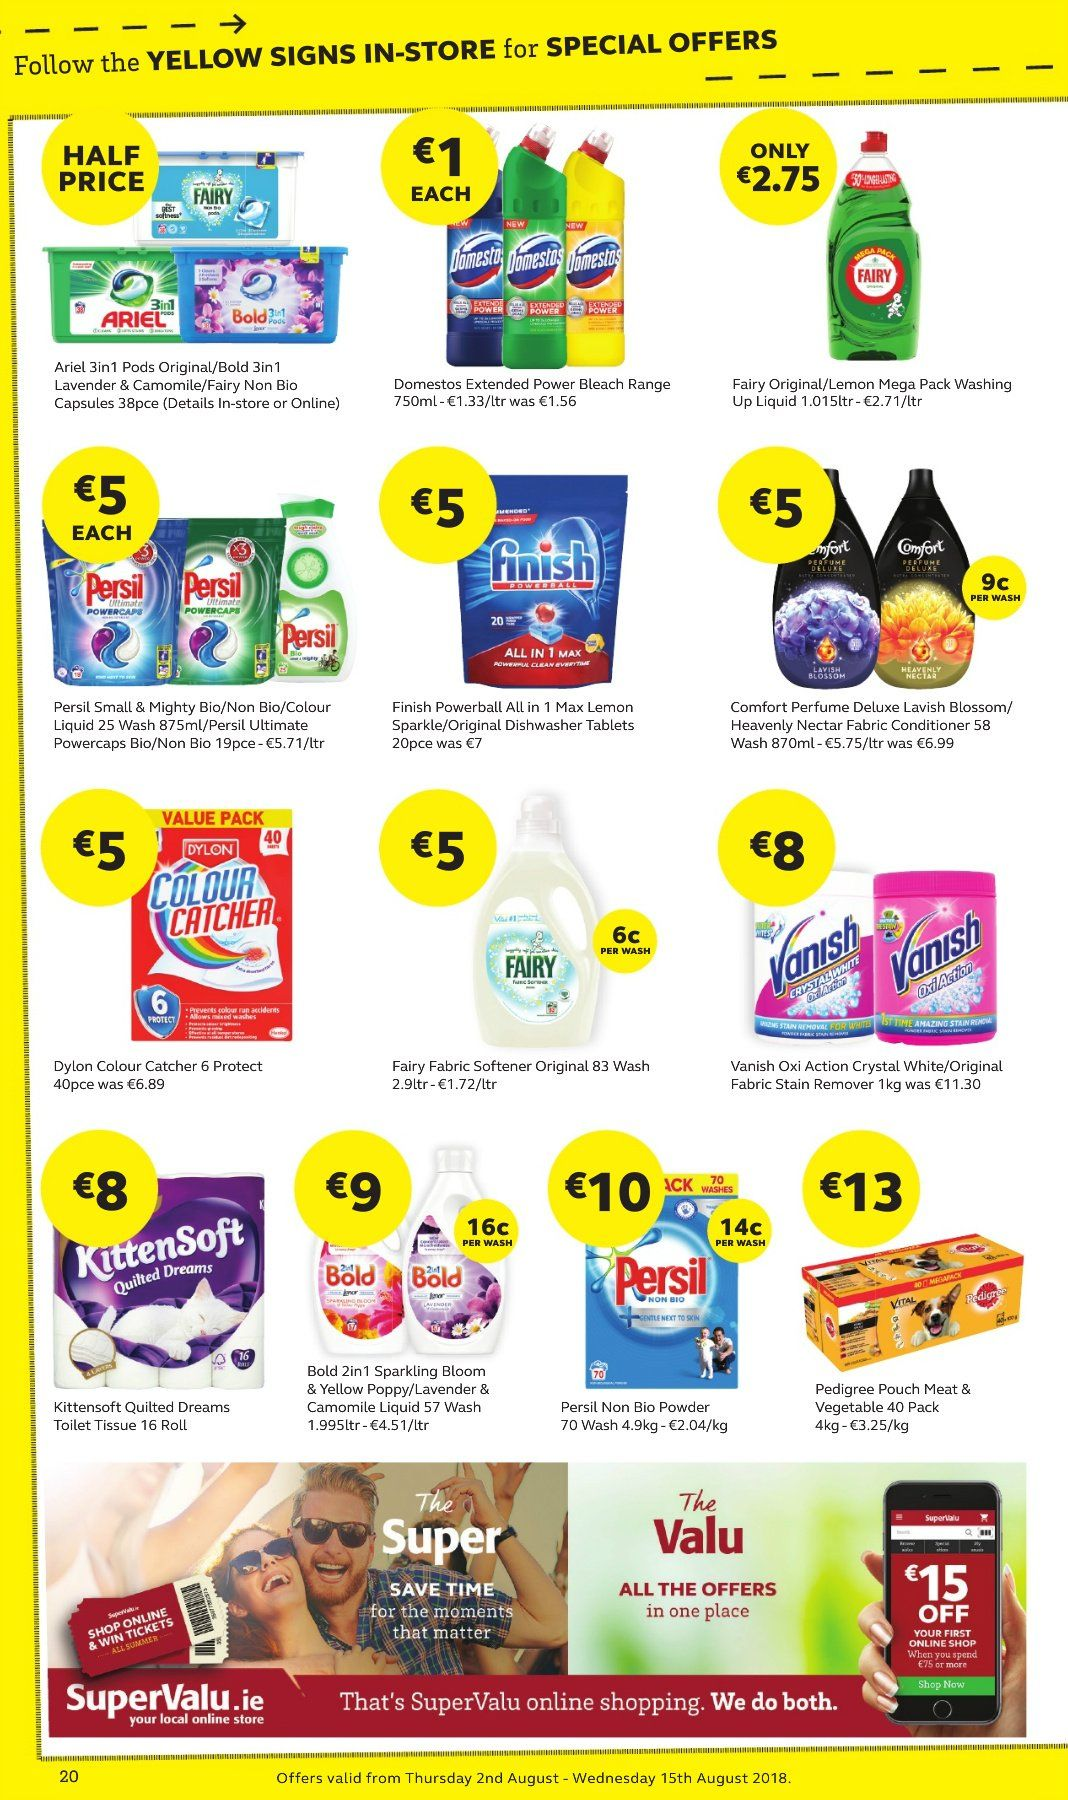 SuperValu offer  - 2.8.2018 - 15.8.2018 - Sales products - Blossom, toilet paper, tissues, Domestos, stain remover, Fairy, Vanish, Persil, fabric softener, Ariel, fabric conditioner, bleach, Bold, Comfort, dishwashing liquid, Finish Powerball, conditioner, eau de parfum, Pedigree, Moments. Page 20.